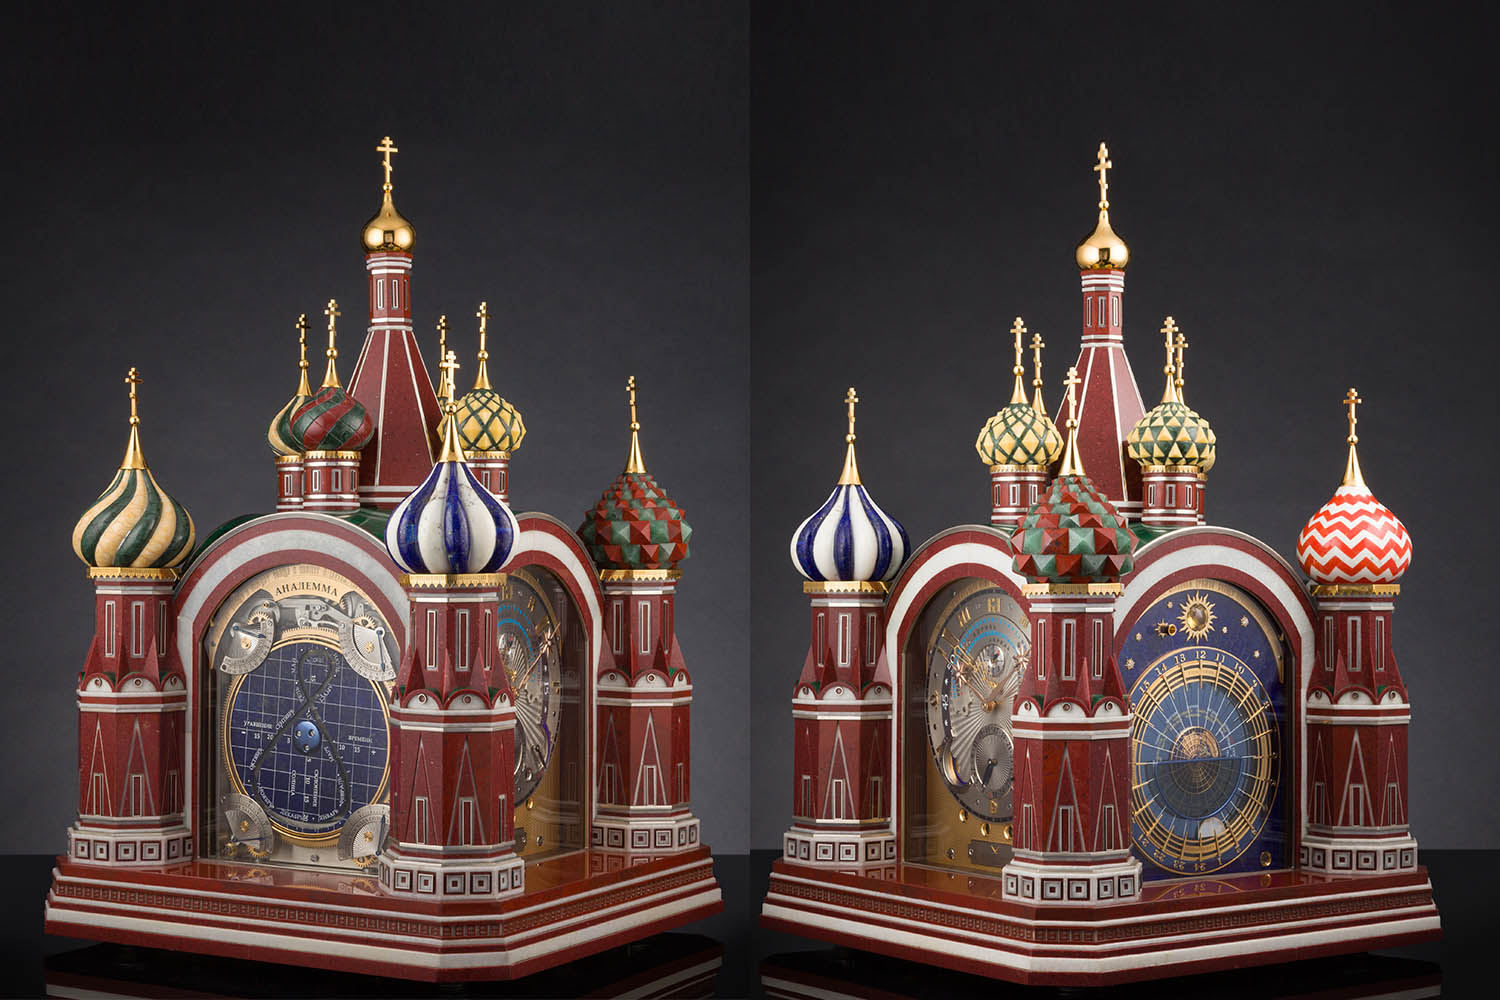 konstantin-chaykin-moscow-comptus-easter-clock-most-complicated-clock-ever-made-in-russia-4